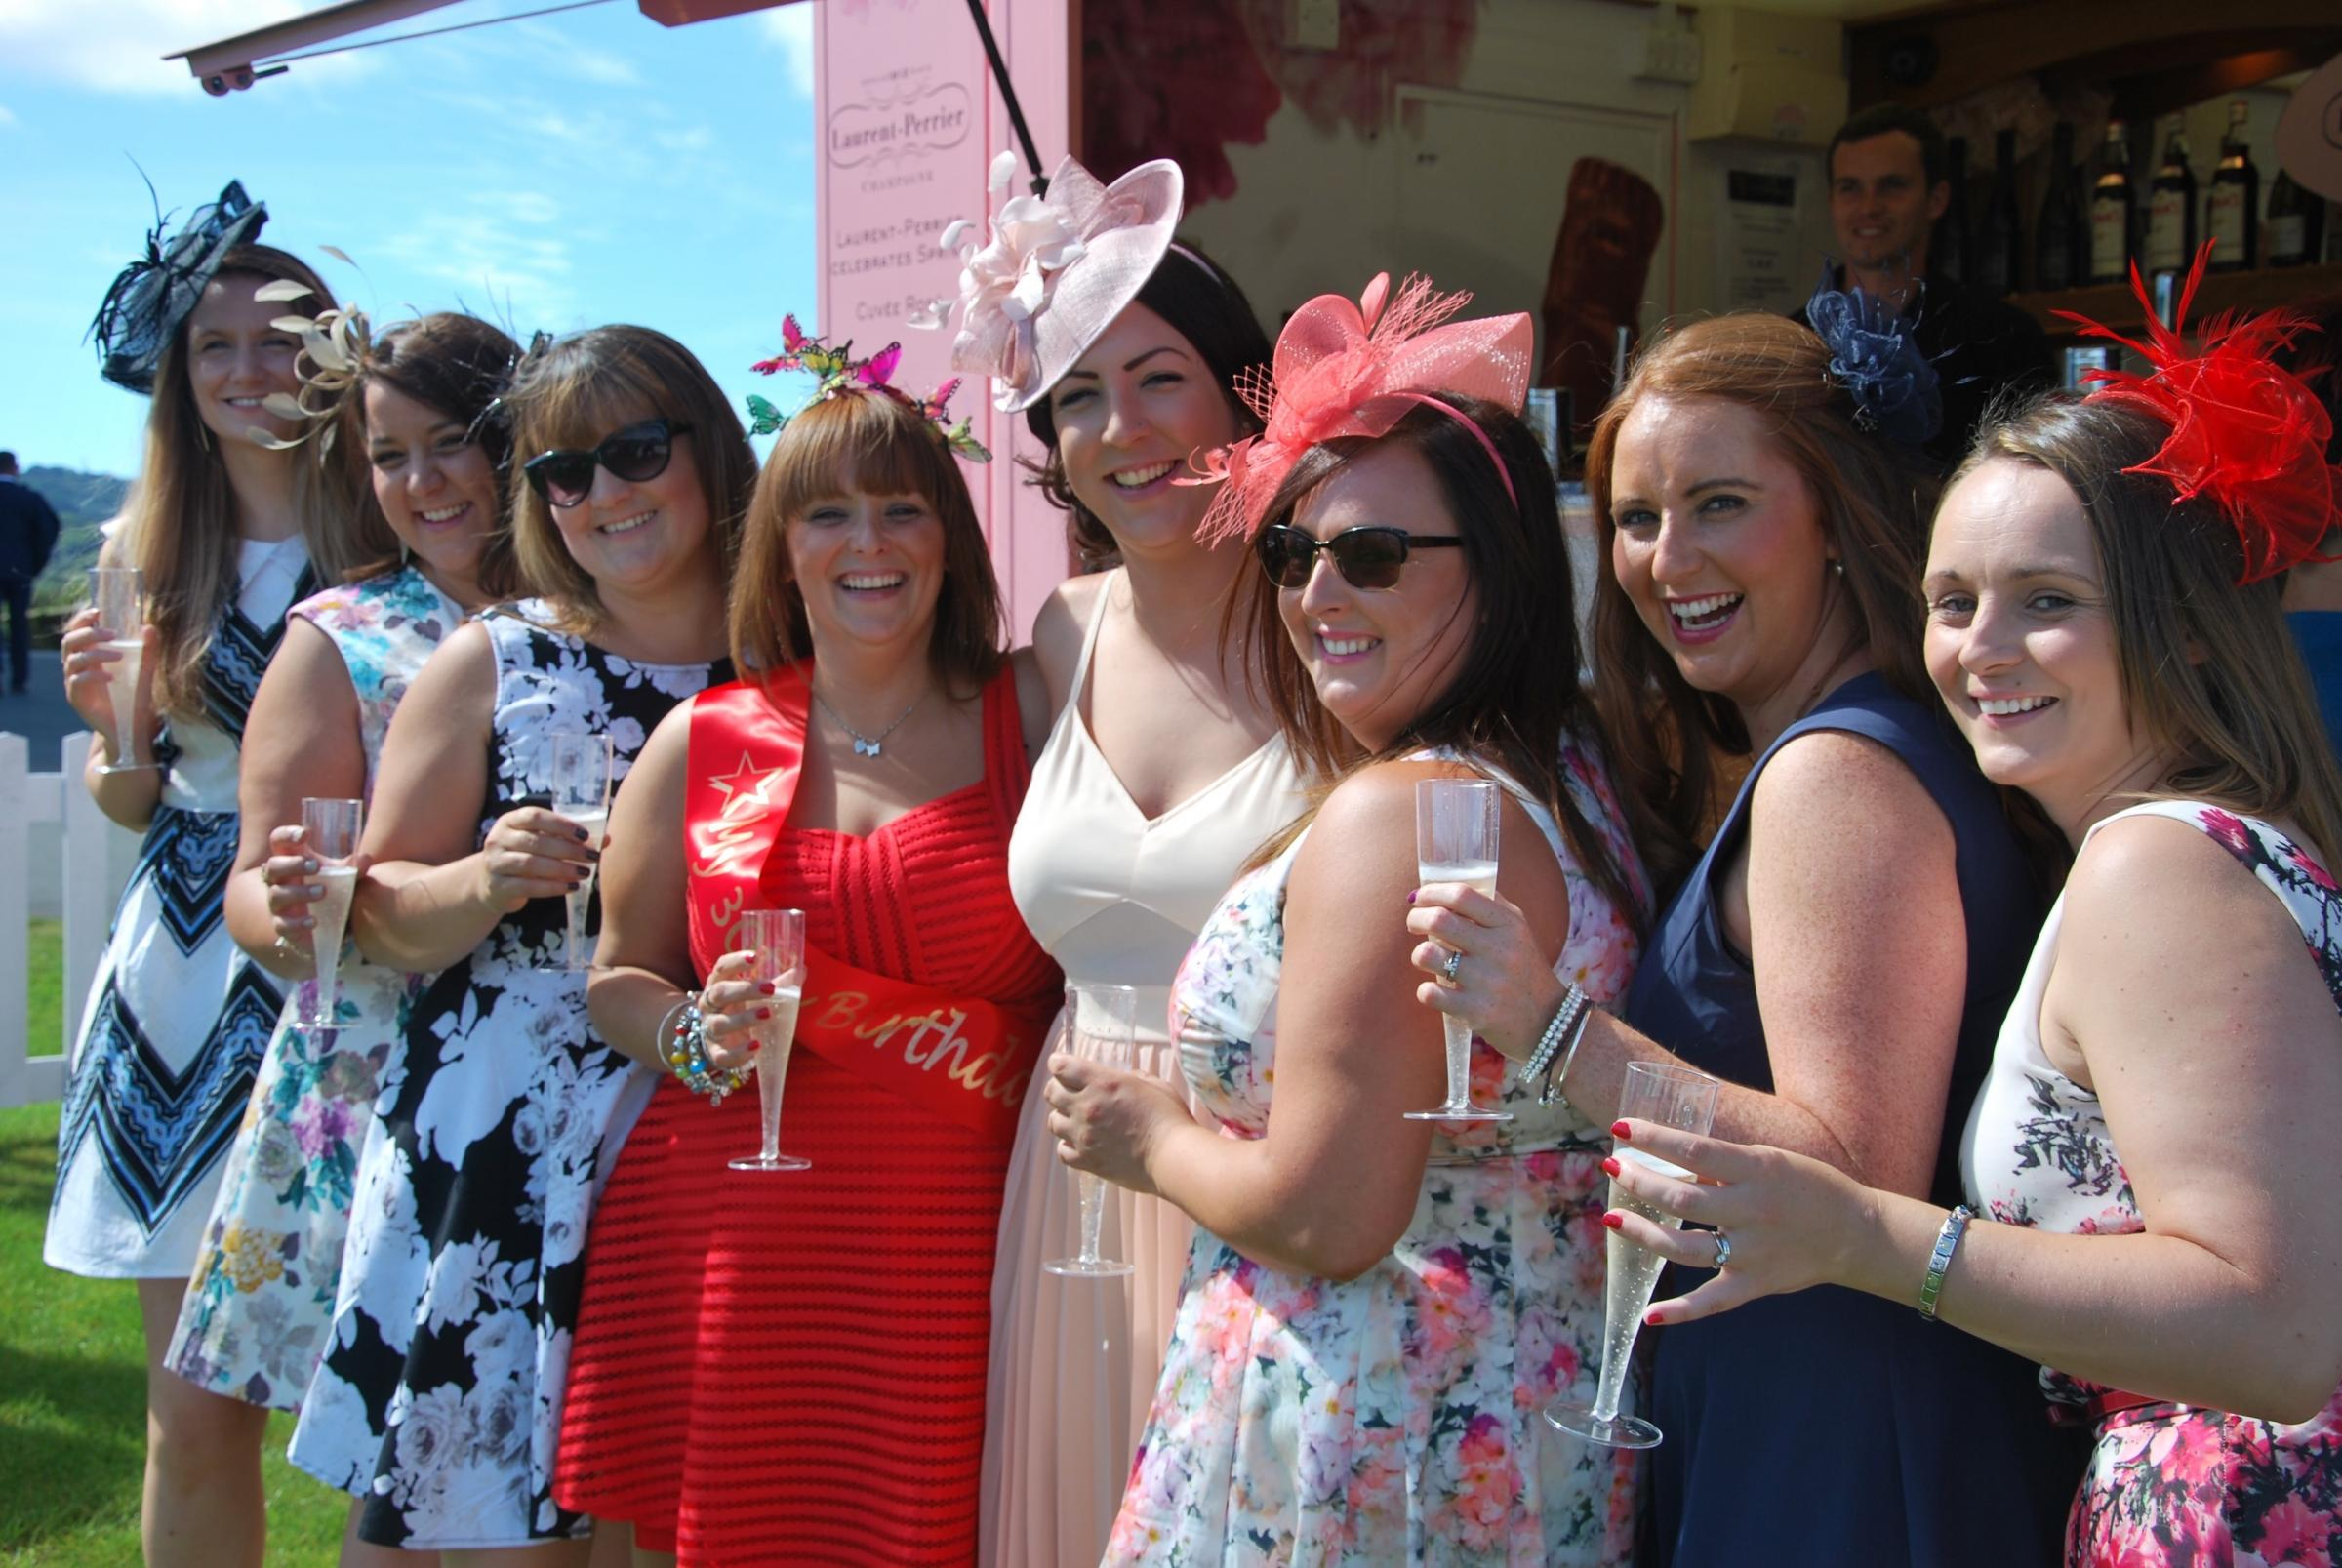 Ffos Las Racing and Events' annual Ladies Night on Bank Holiday Saturday, May 27